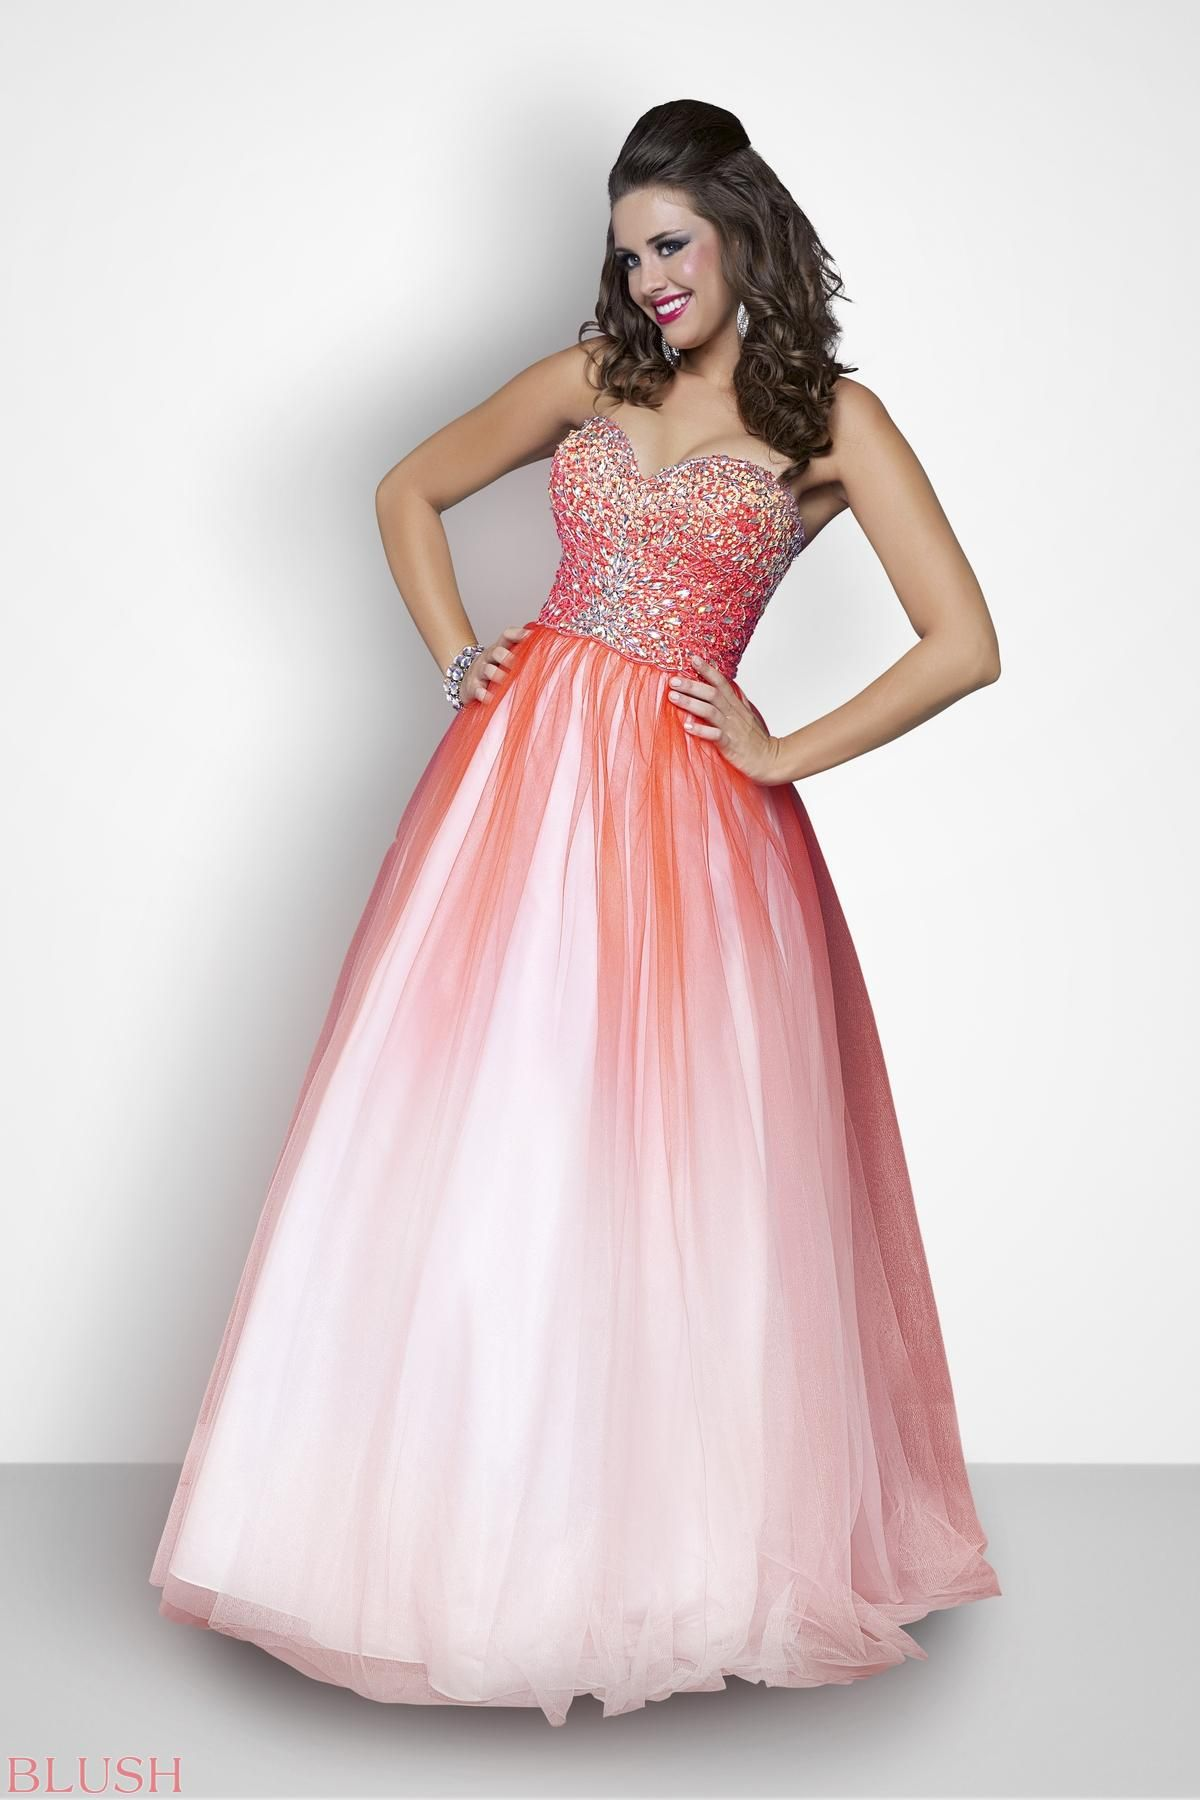 Pink by Blush Prom Plus Style 111W #IPAProm   Blush Prom Dresses ...